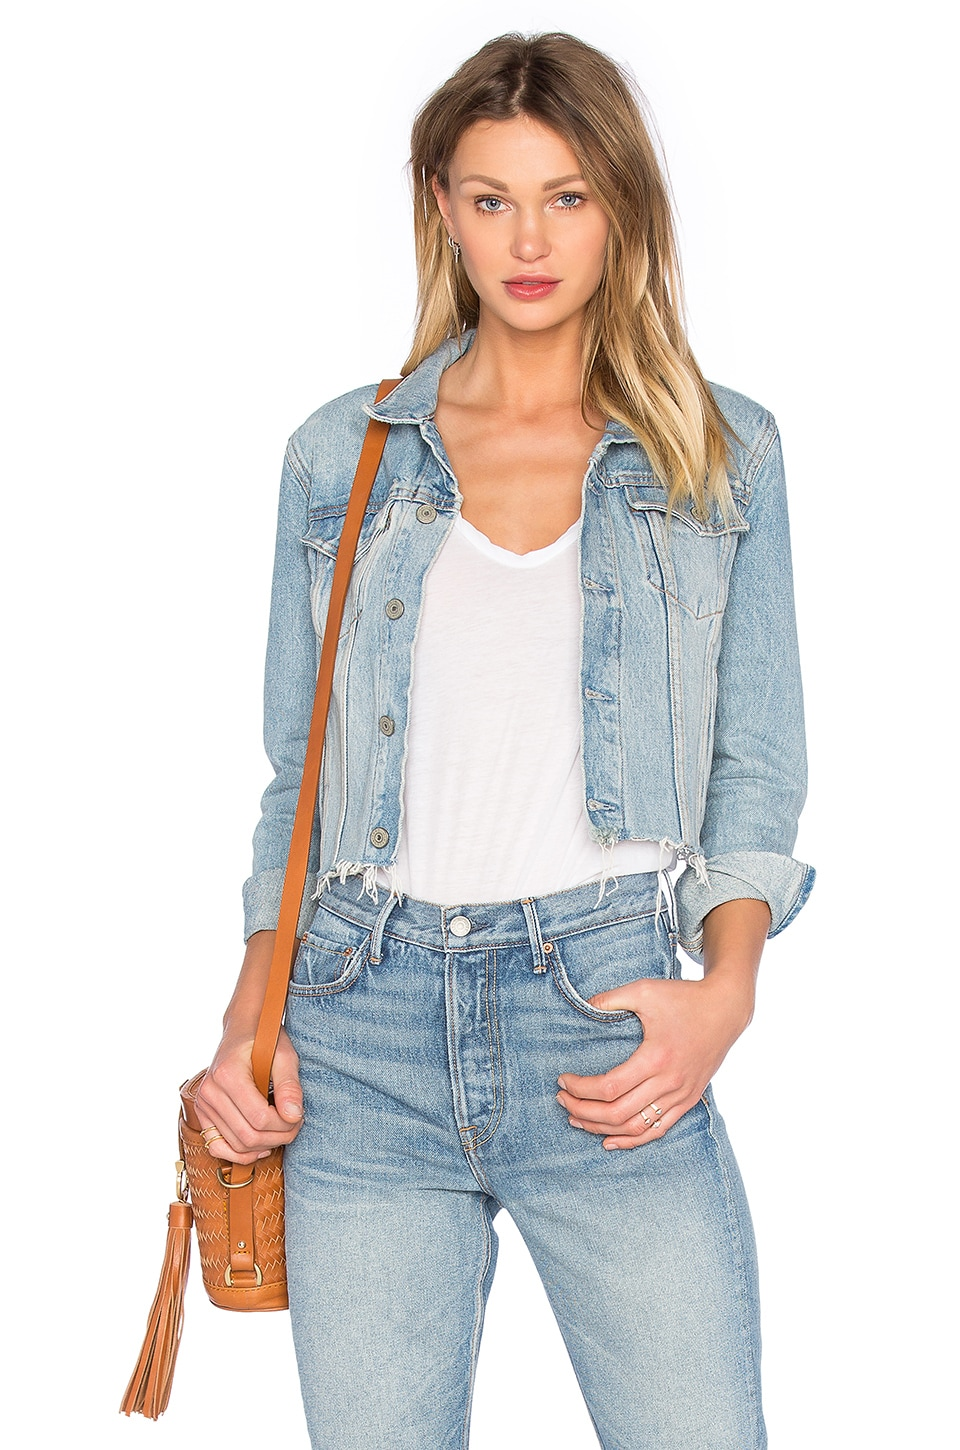 GRLFRND Cara Cropped Trucker Jacket in You Belong to Me